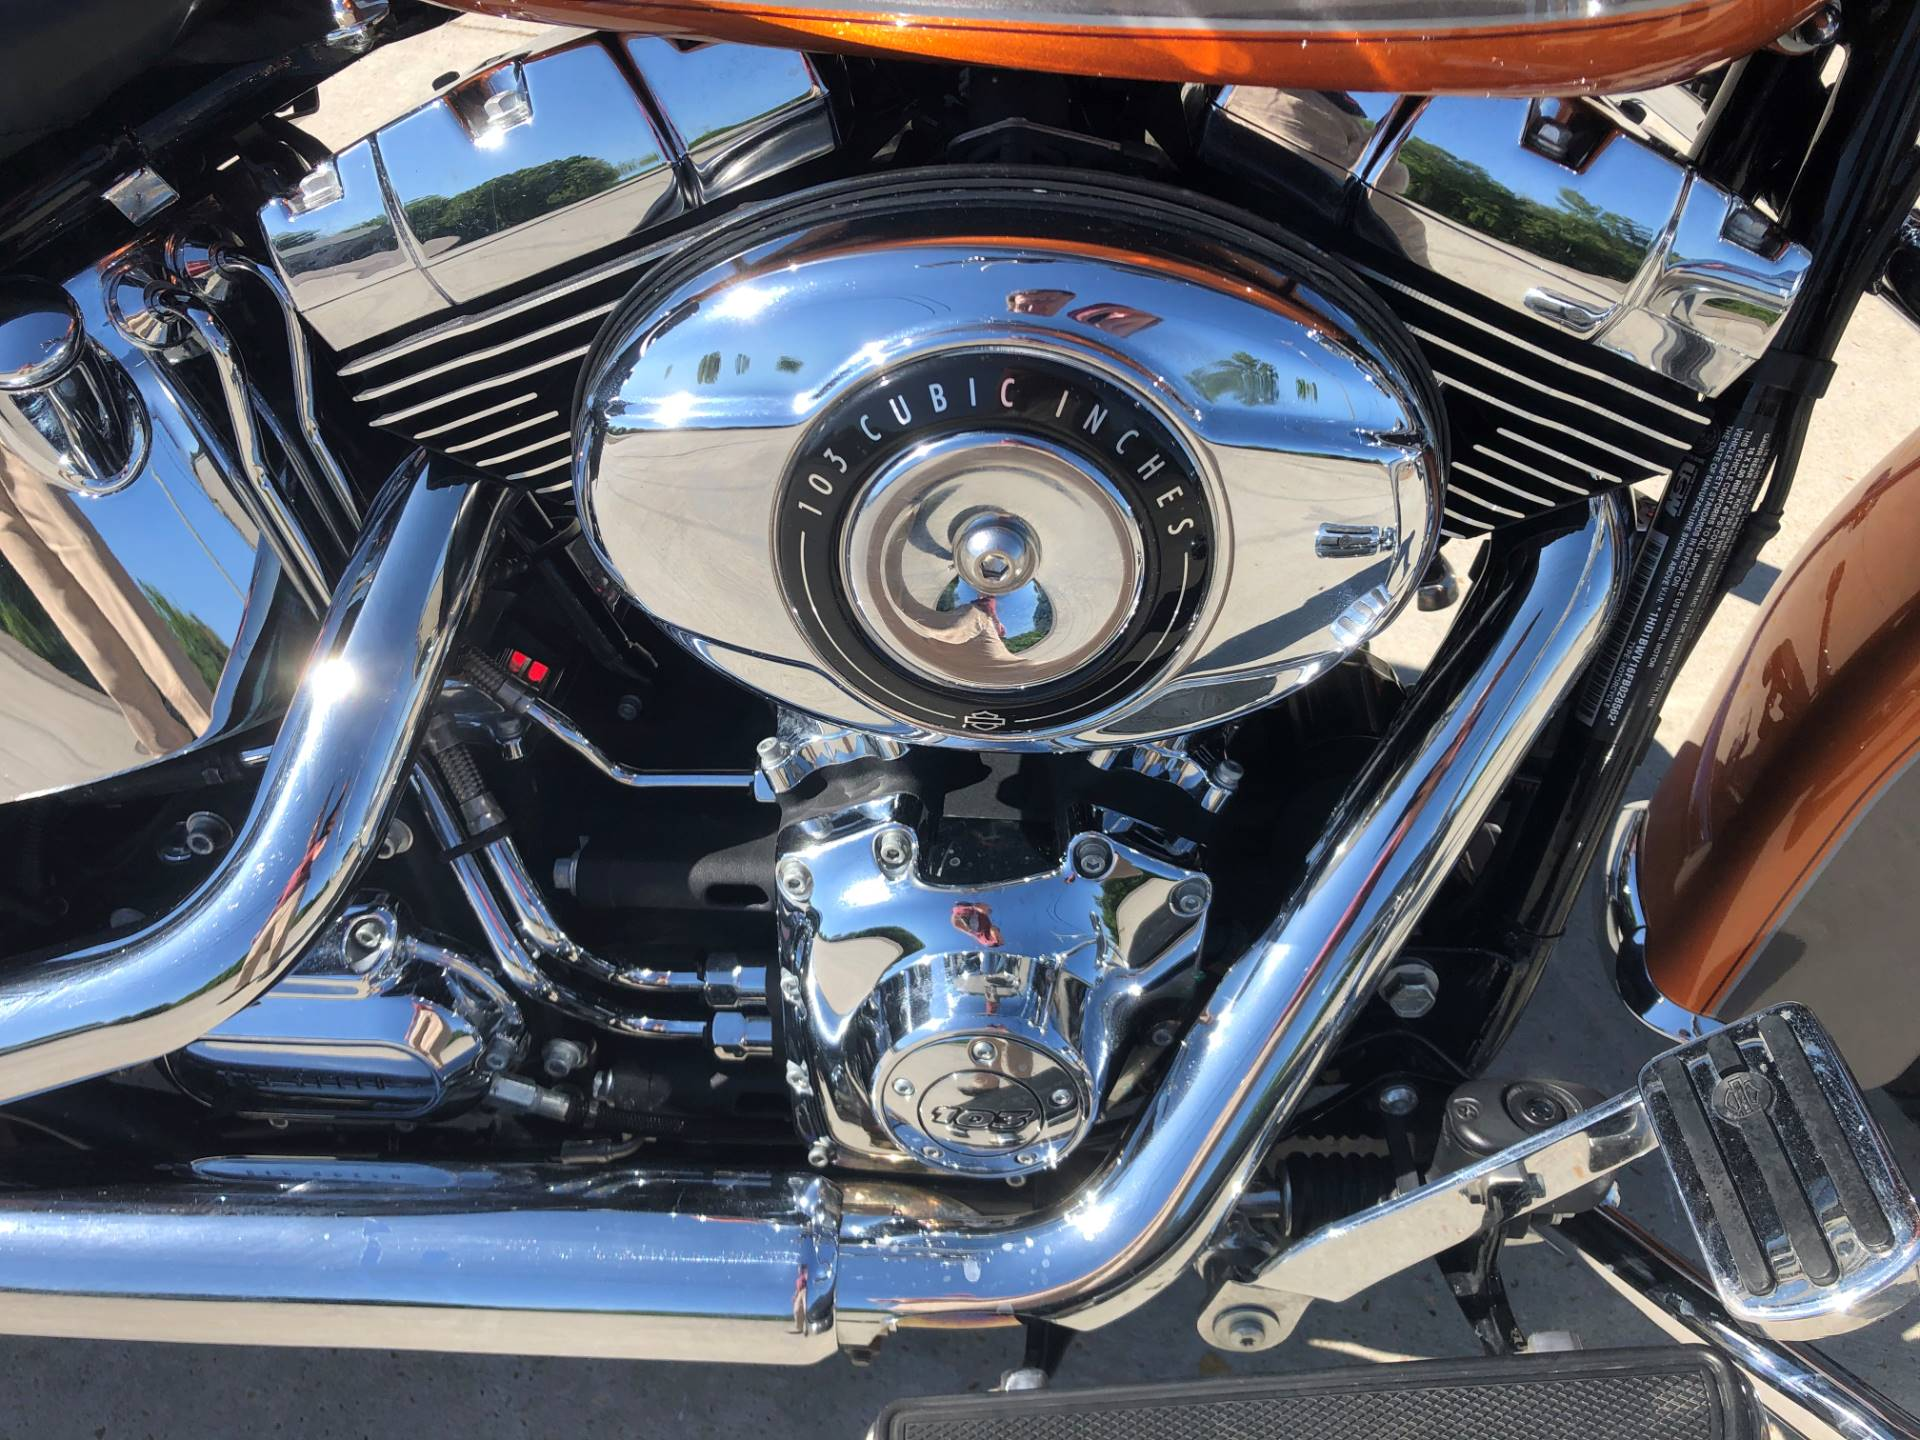 2015 Harley-Davidson Heritage Softail® Classic in Leland, Mississippi - Photo 11